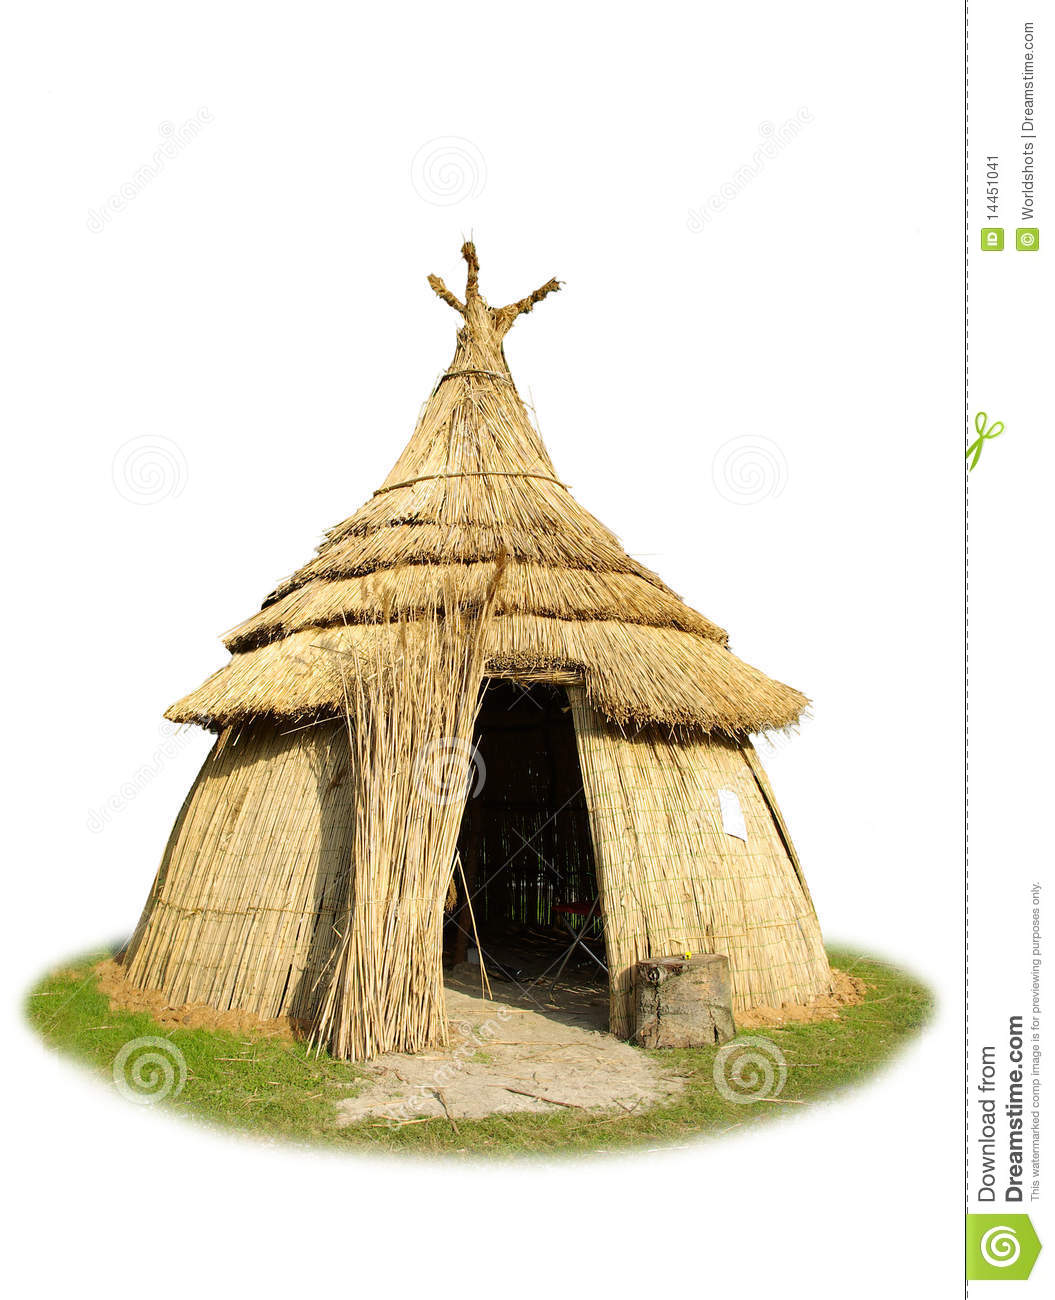 White background isolated picture of African thatched hut made of ...